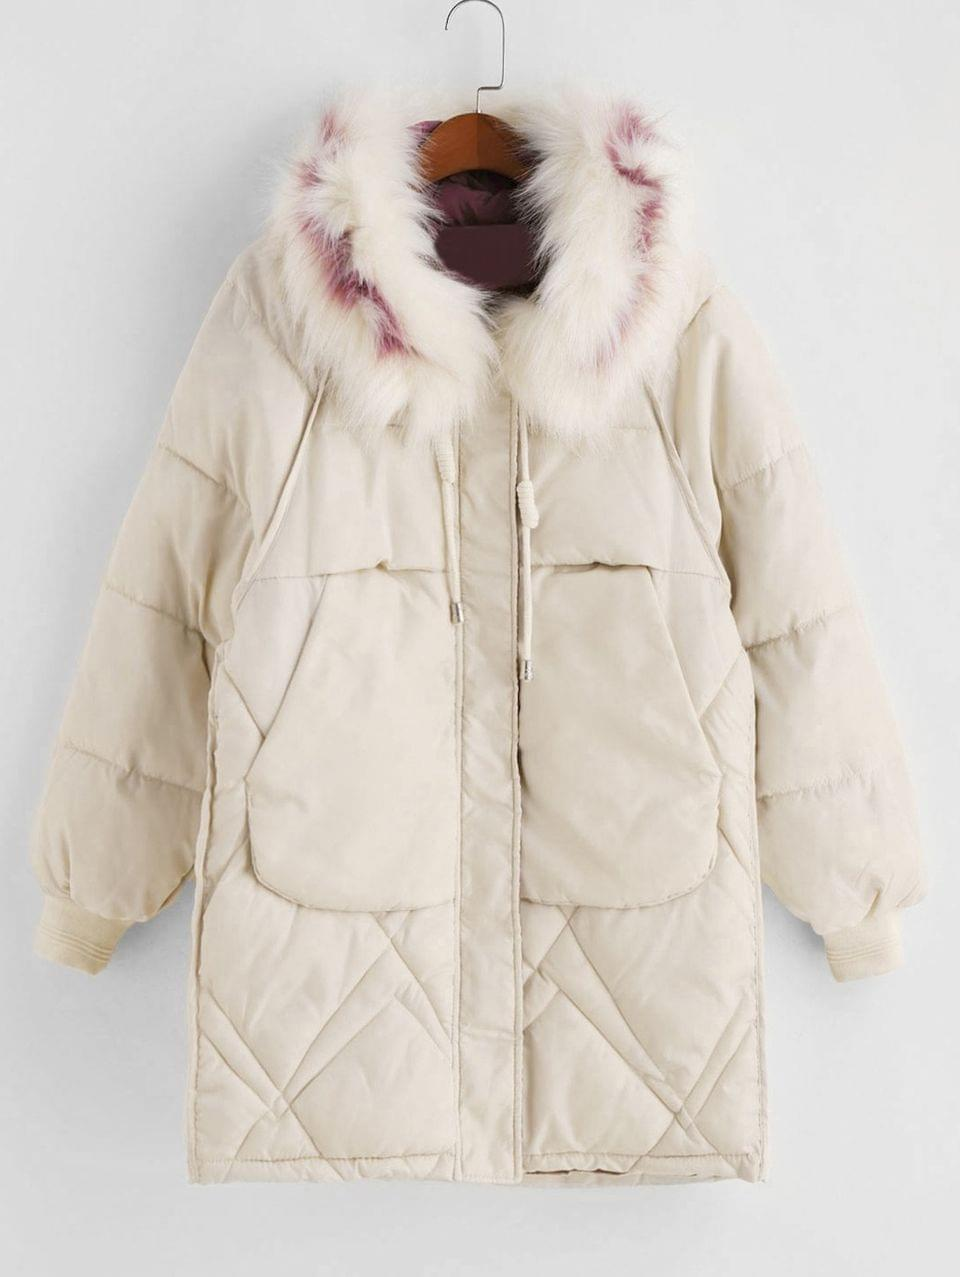 Women's Zip Up Fur Collar Pockets Parka Coat - White 3xl